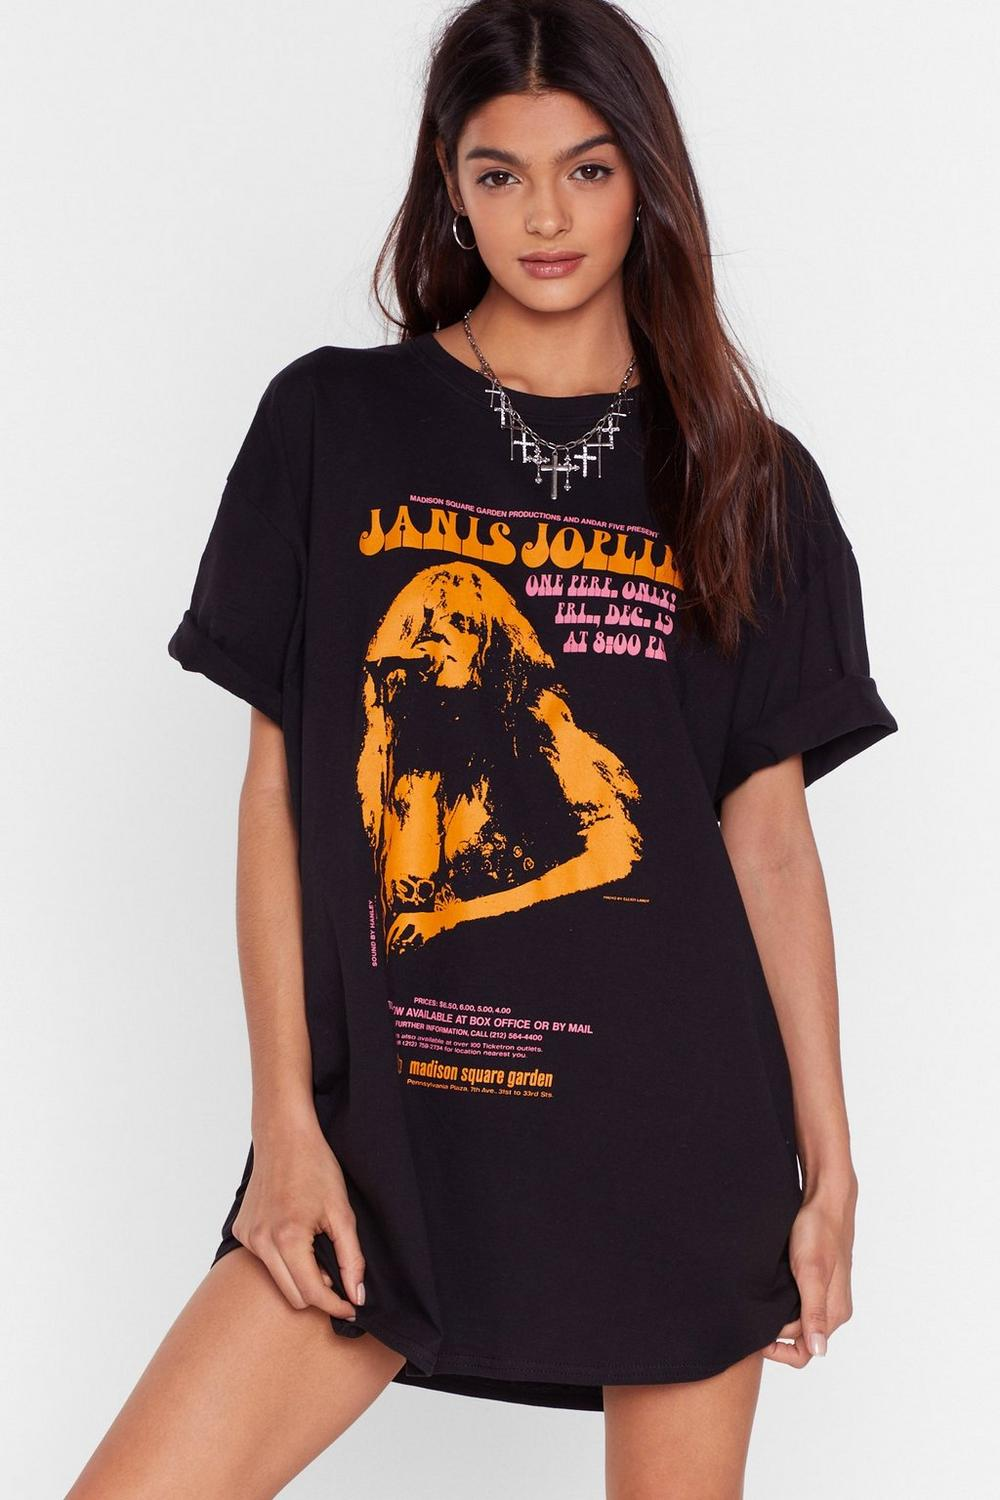 black-janis-joplin-graphic-band-tee-dress-just-add-glam | 30 BEST VINTAGE BAND TEES by popular San Francisco life and style blog, Just Add Glam: image of a vintage Janis Joplin tee.